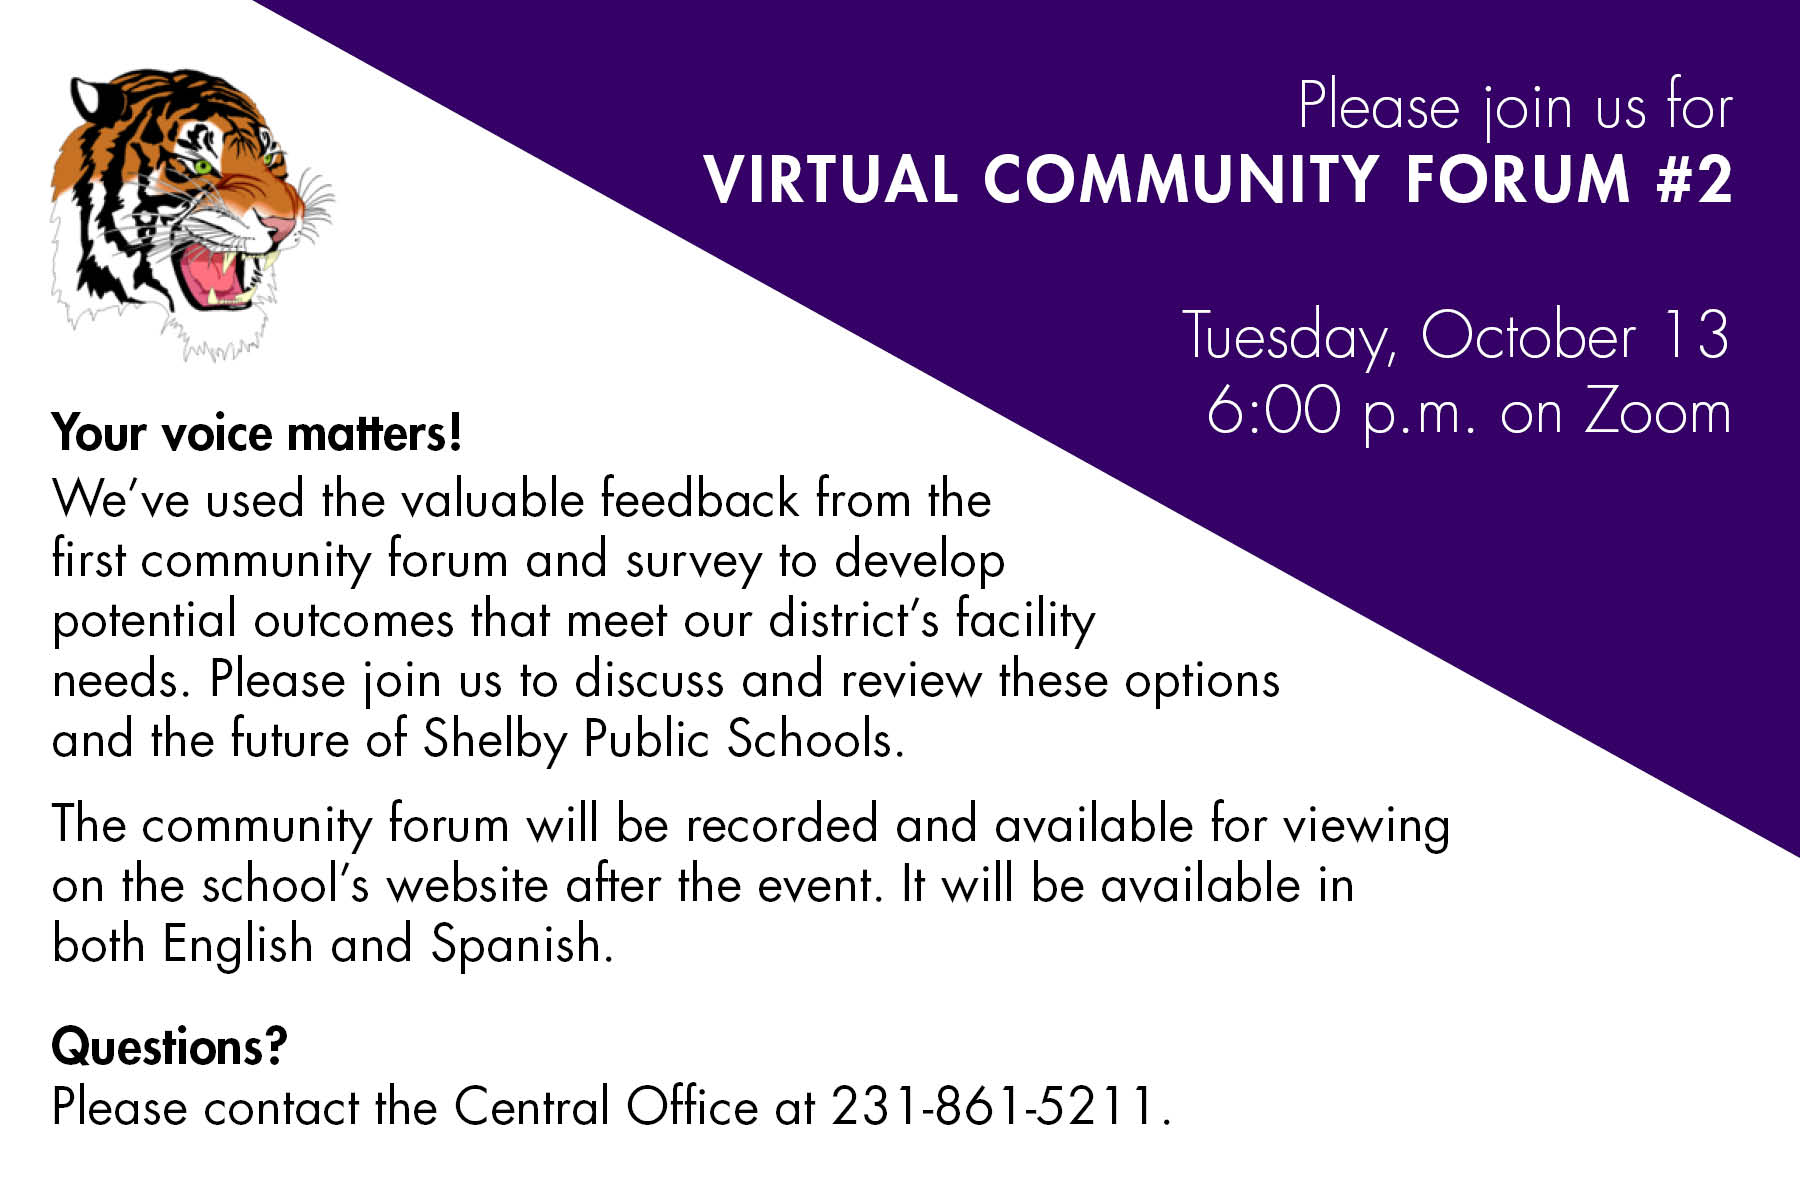 community forum scheduled for Oct 13